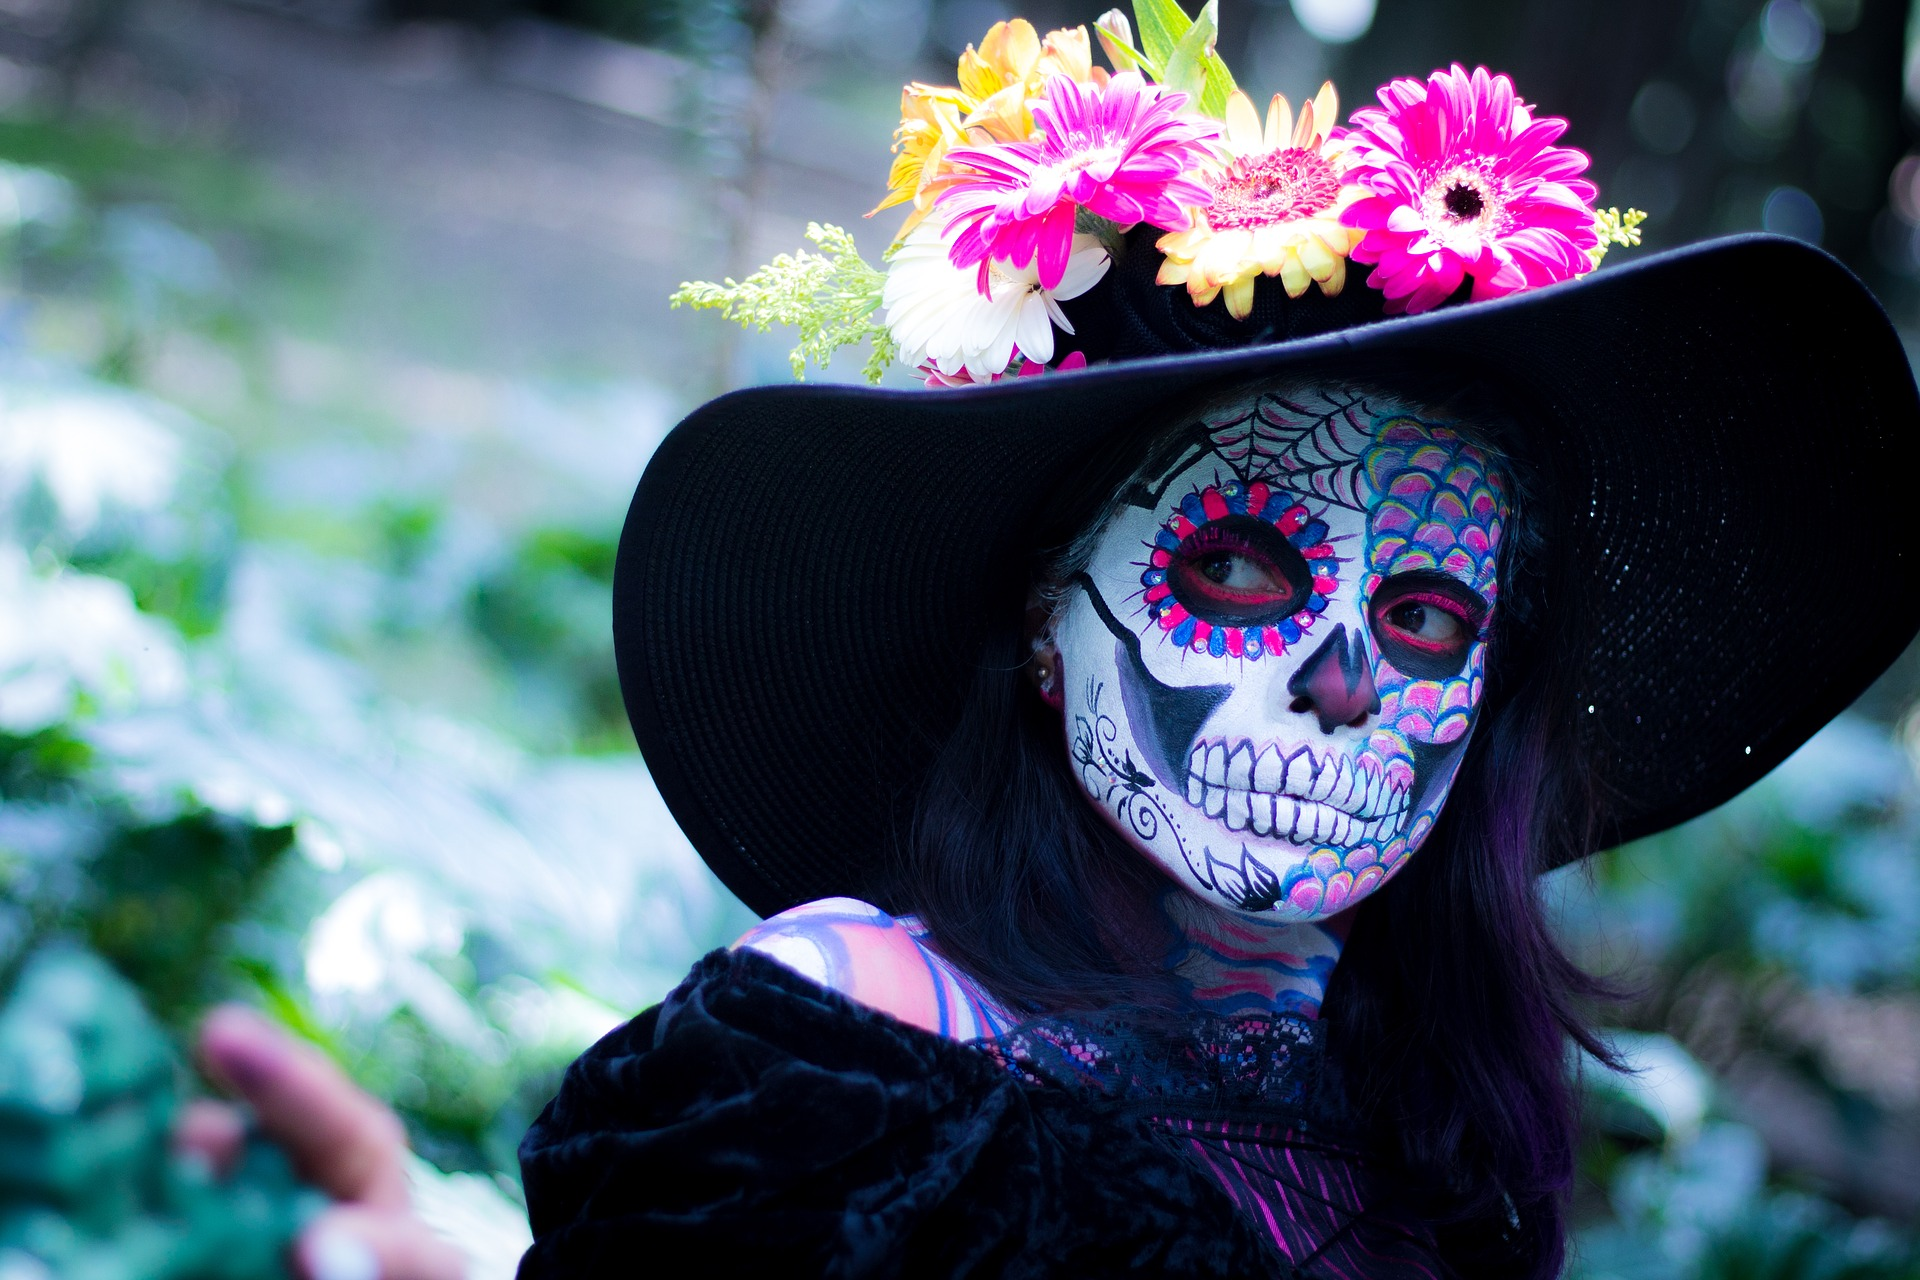 A woman in Day of the Dead costume with colourful skeleton makeup and a large black hat with orange and pink flowers on top. Day of the Dead in Mexico / Skyscanner Canada